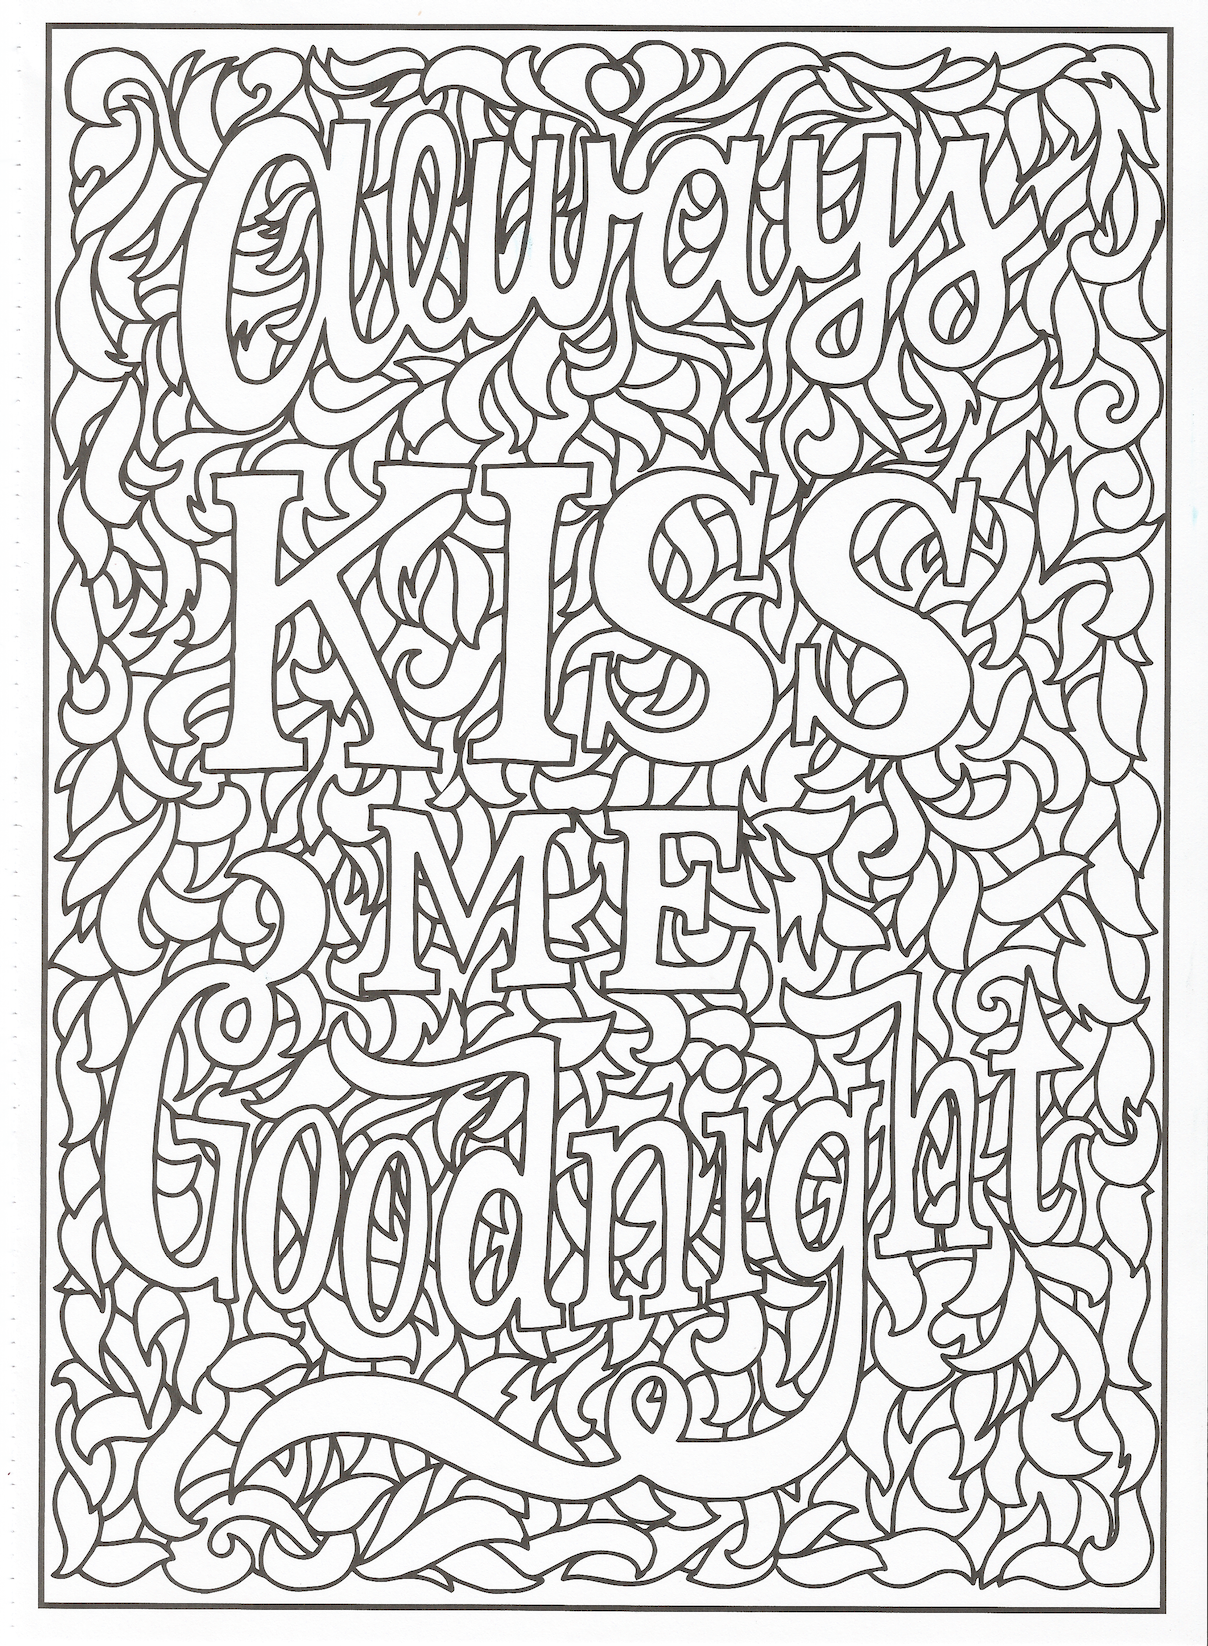 Timeless Creations Creative Quotes Coloring Page Always Kiss Me Goodnight Love Coloring Pages Quote Coloring Pages Creation Coloring Pages